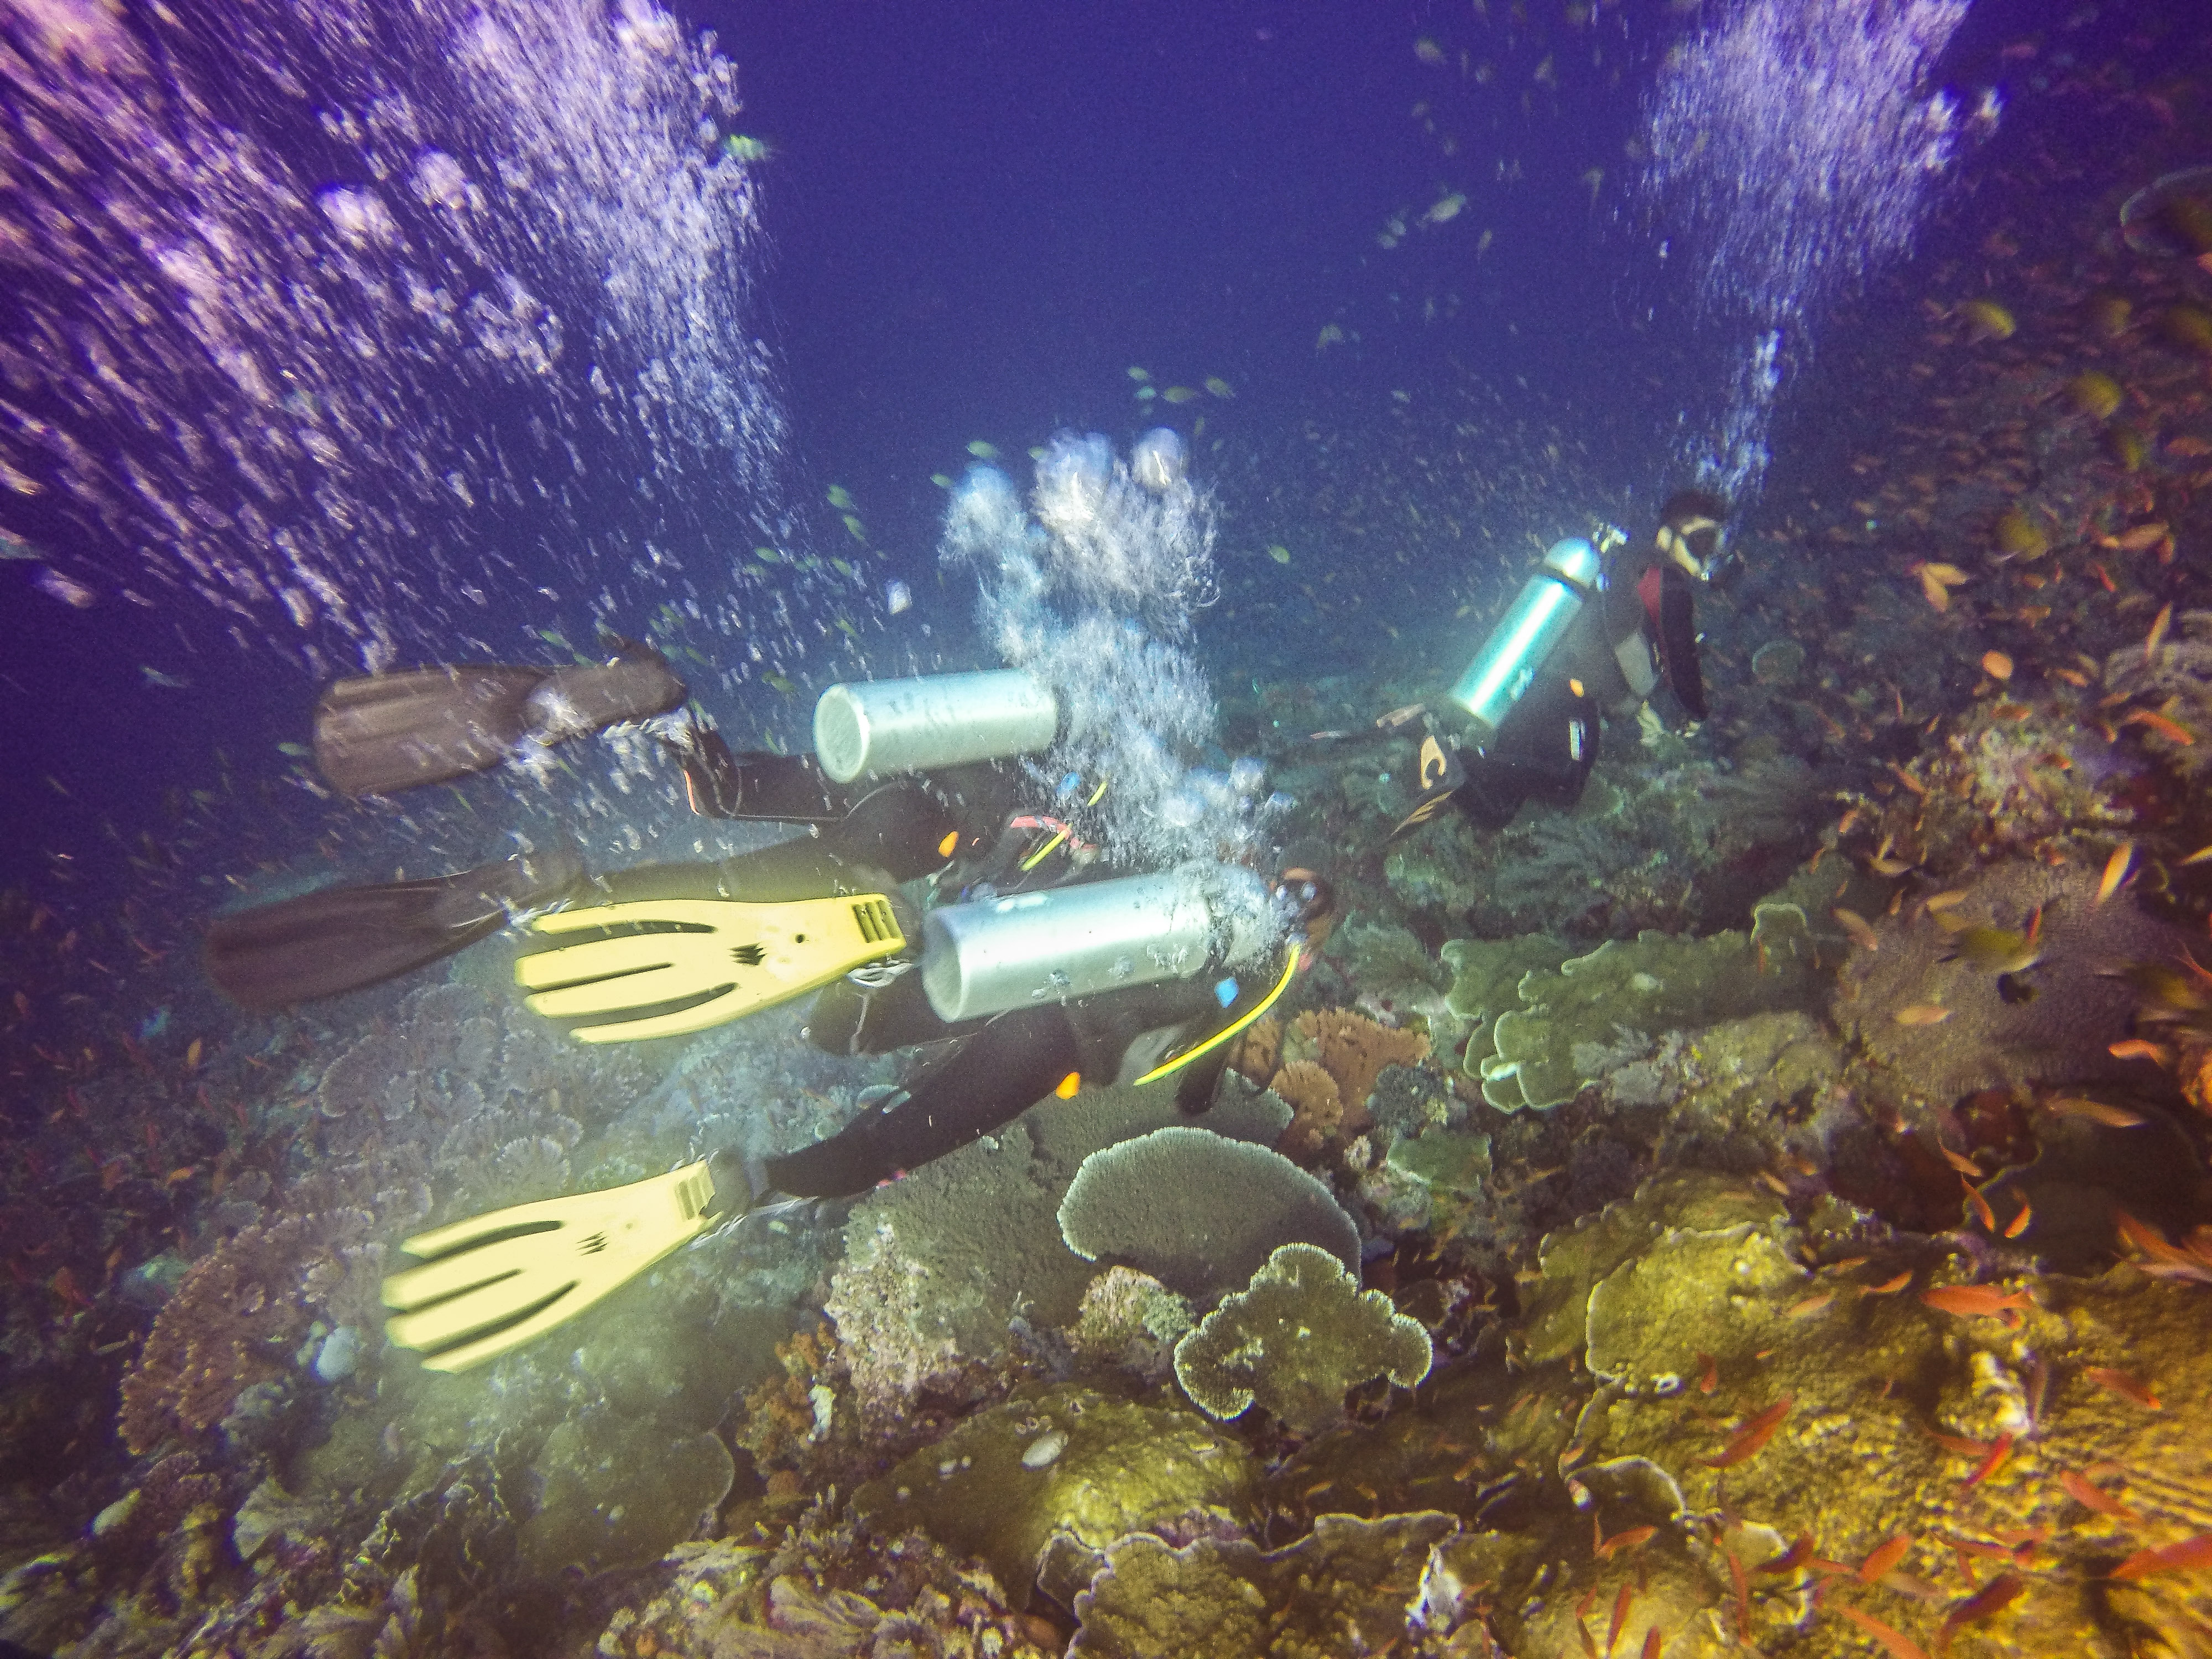 Indonesia Day 11-13 – Komodo Diving: The Wunderpus is not a